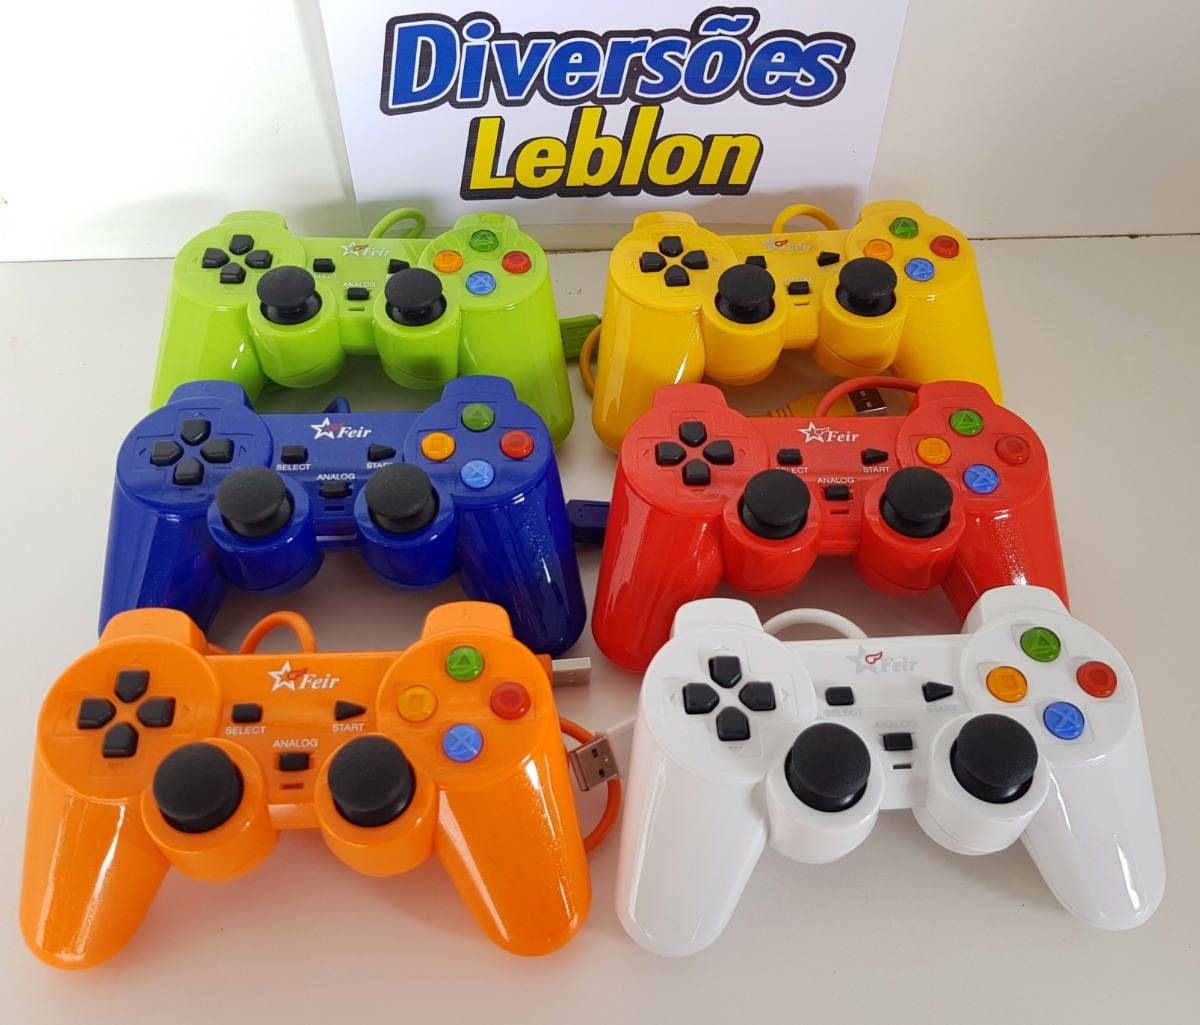 2 Controles Colorido Usb Pc Windows 10 7 Retropie Note Games